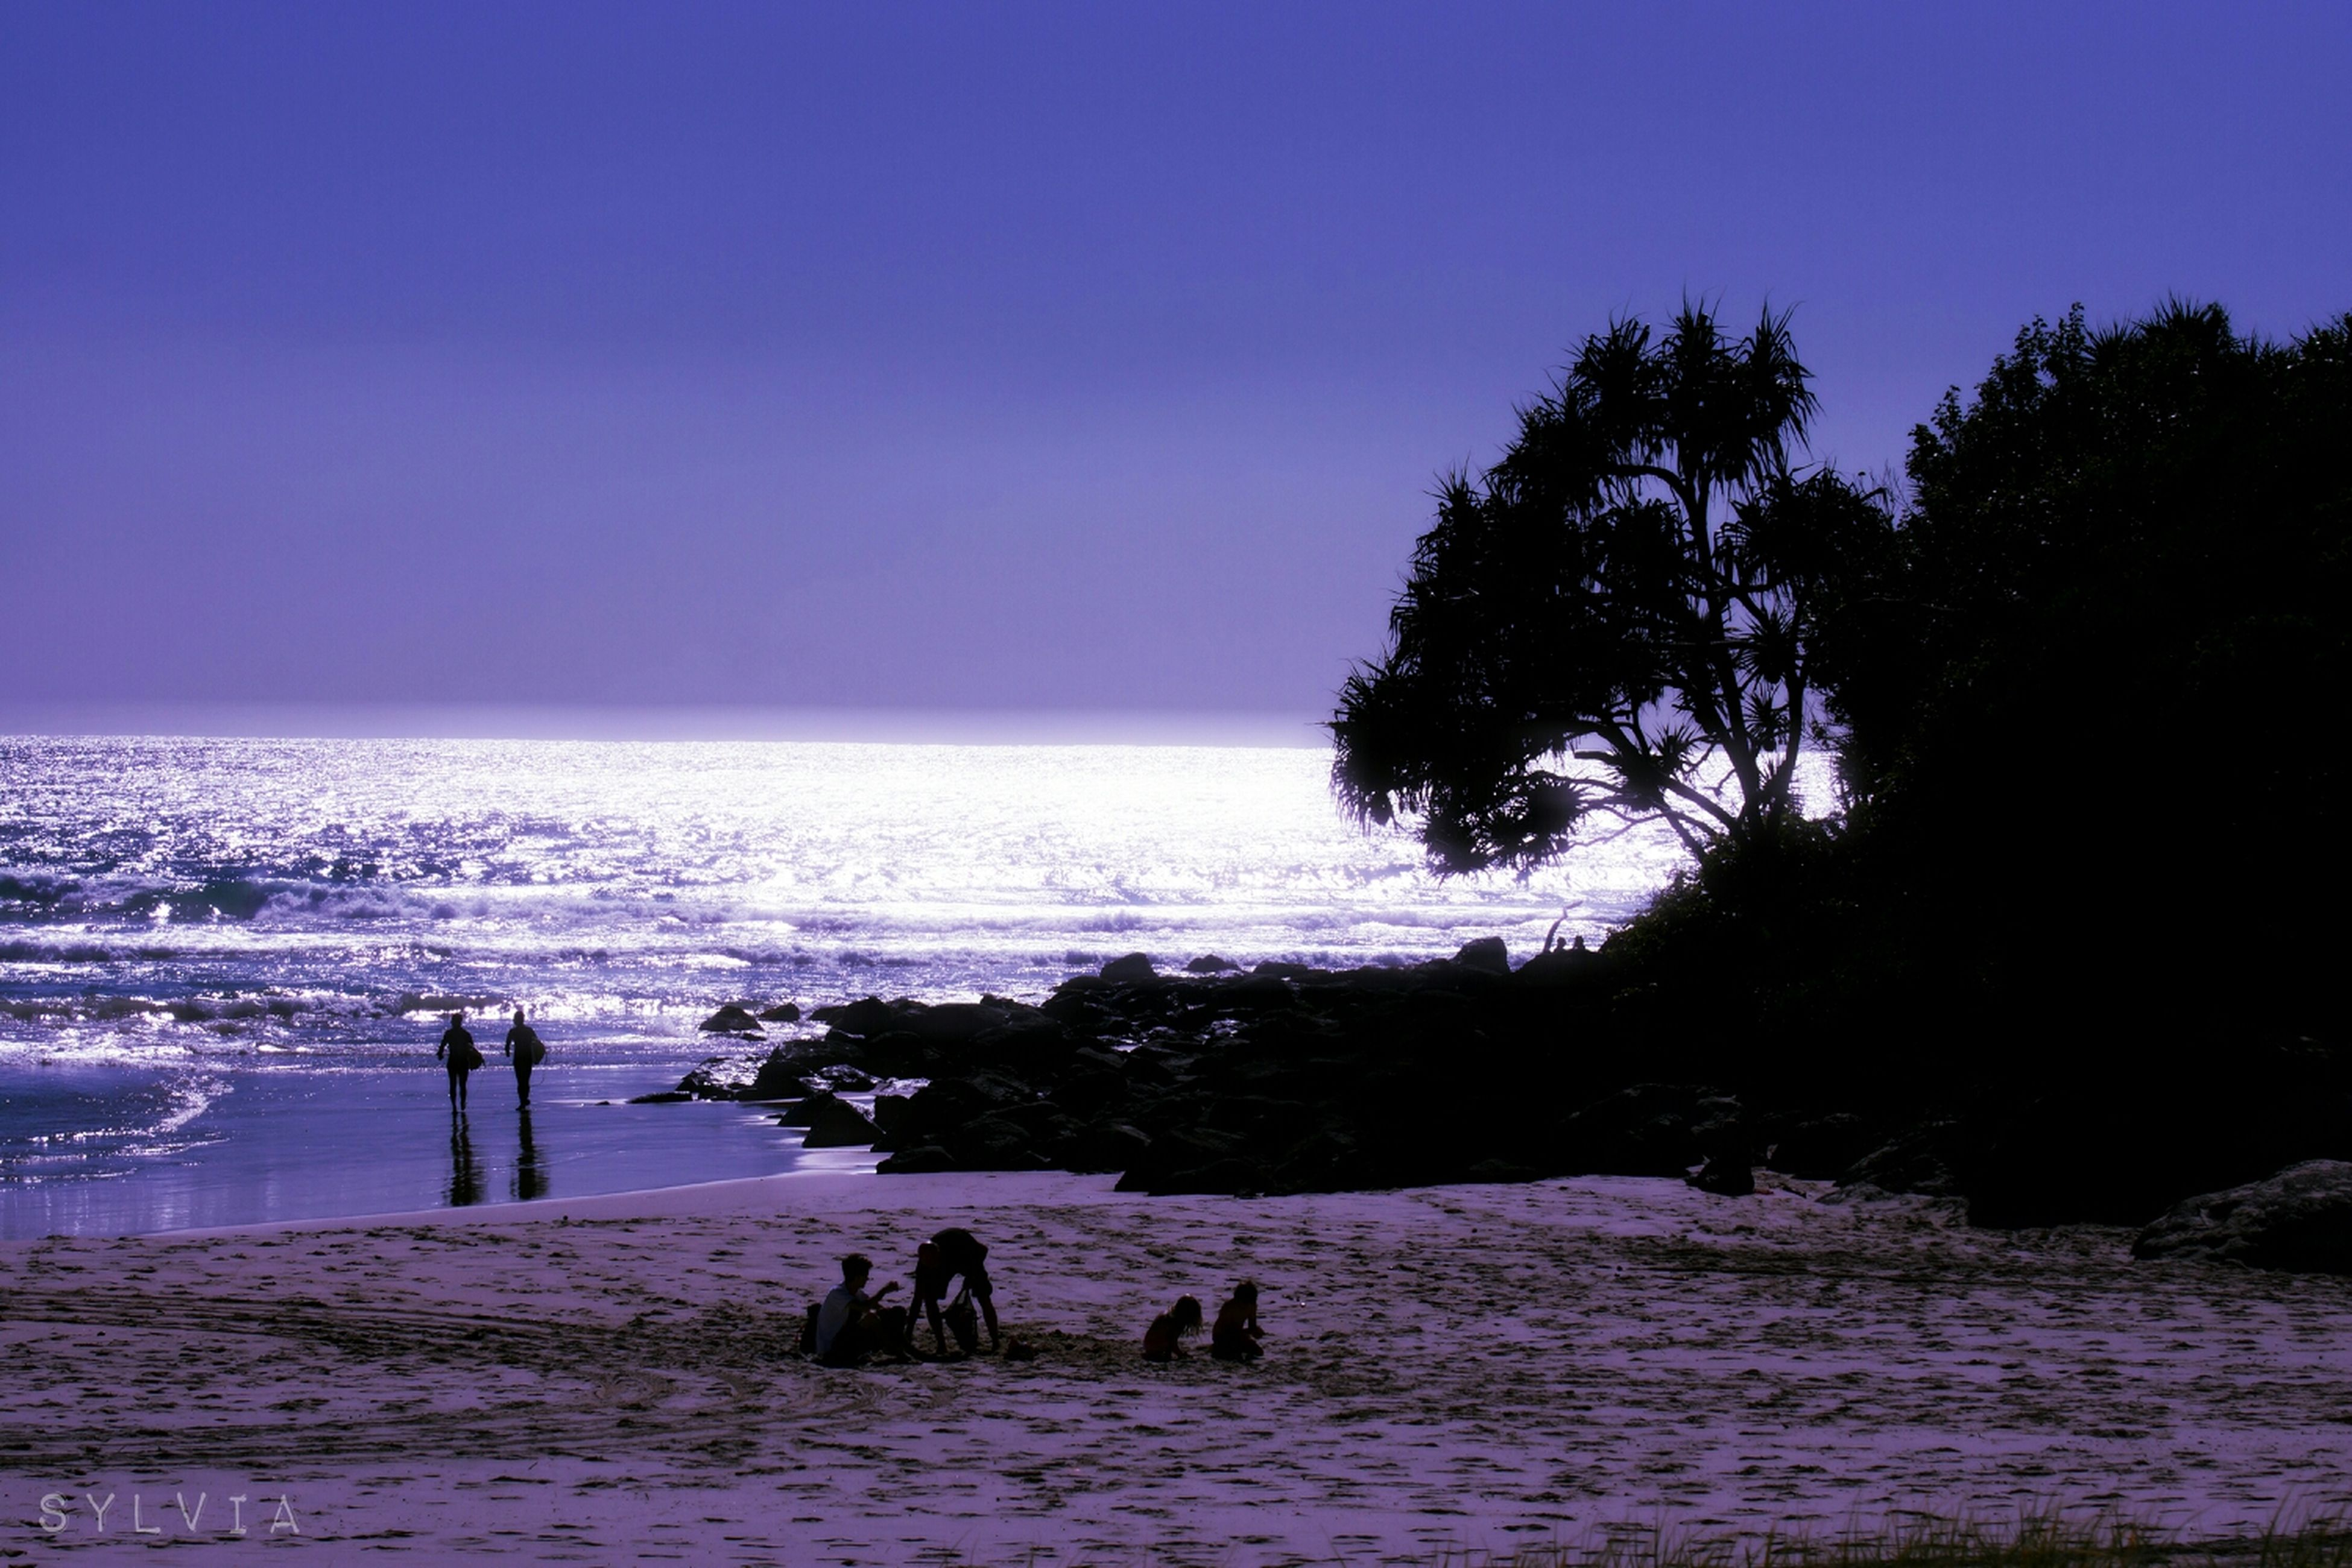 sea, water, beach, horizon over water, leisure activity, silhouette, clear sky, lifestyles, scenics, copy space, shore, tranquil scene, vacations, beauty in nature, men, blue, tranquility, togetherness, enjoyment